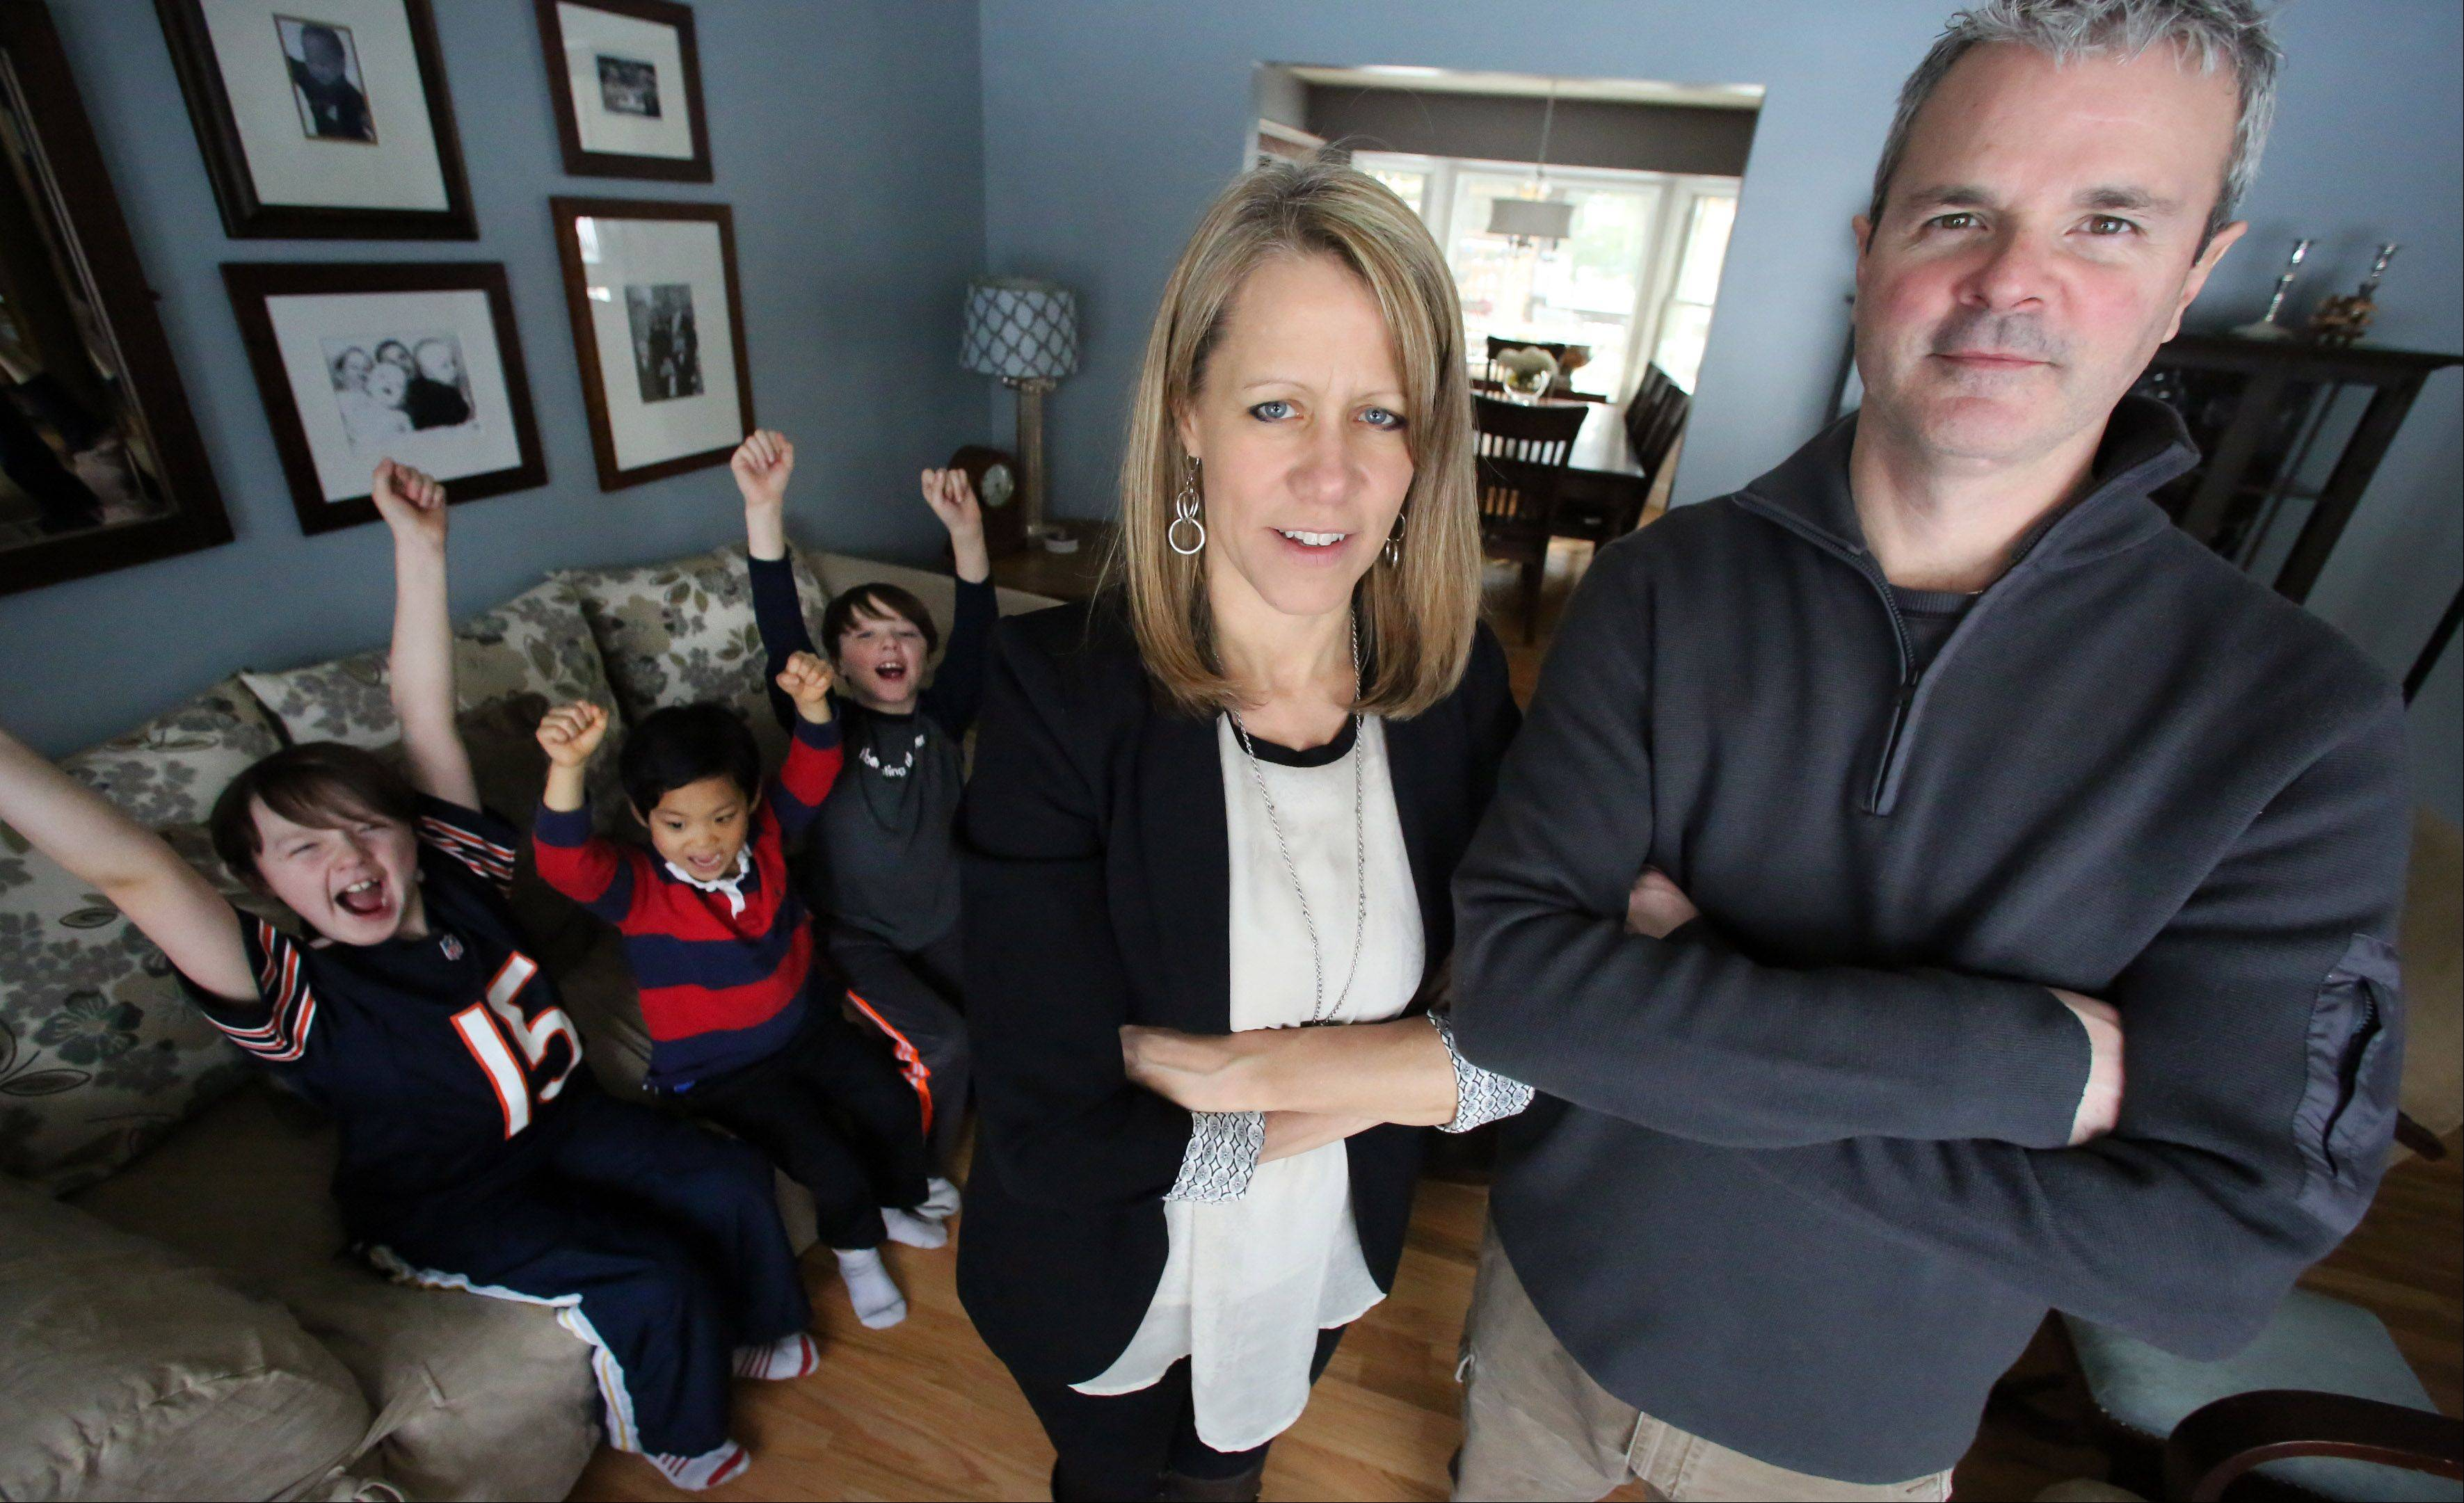 Jen and Will Ortman at their home in Arlington Heights just found out before this photo was taken on Sunday that their son's Nick, 9, left to right, Nate, 5, and Max, 9, will be staying home on Monday and Tuesday due to school closures.